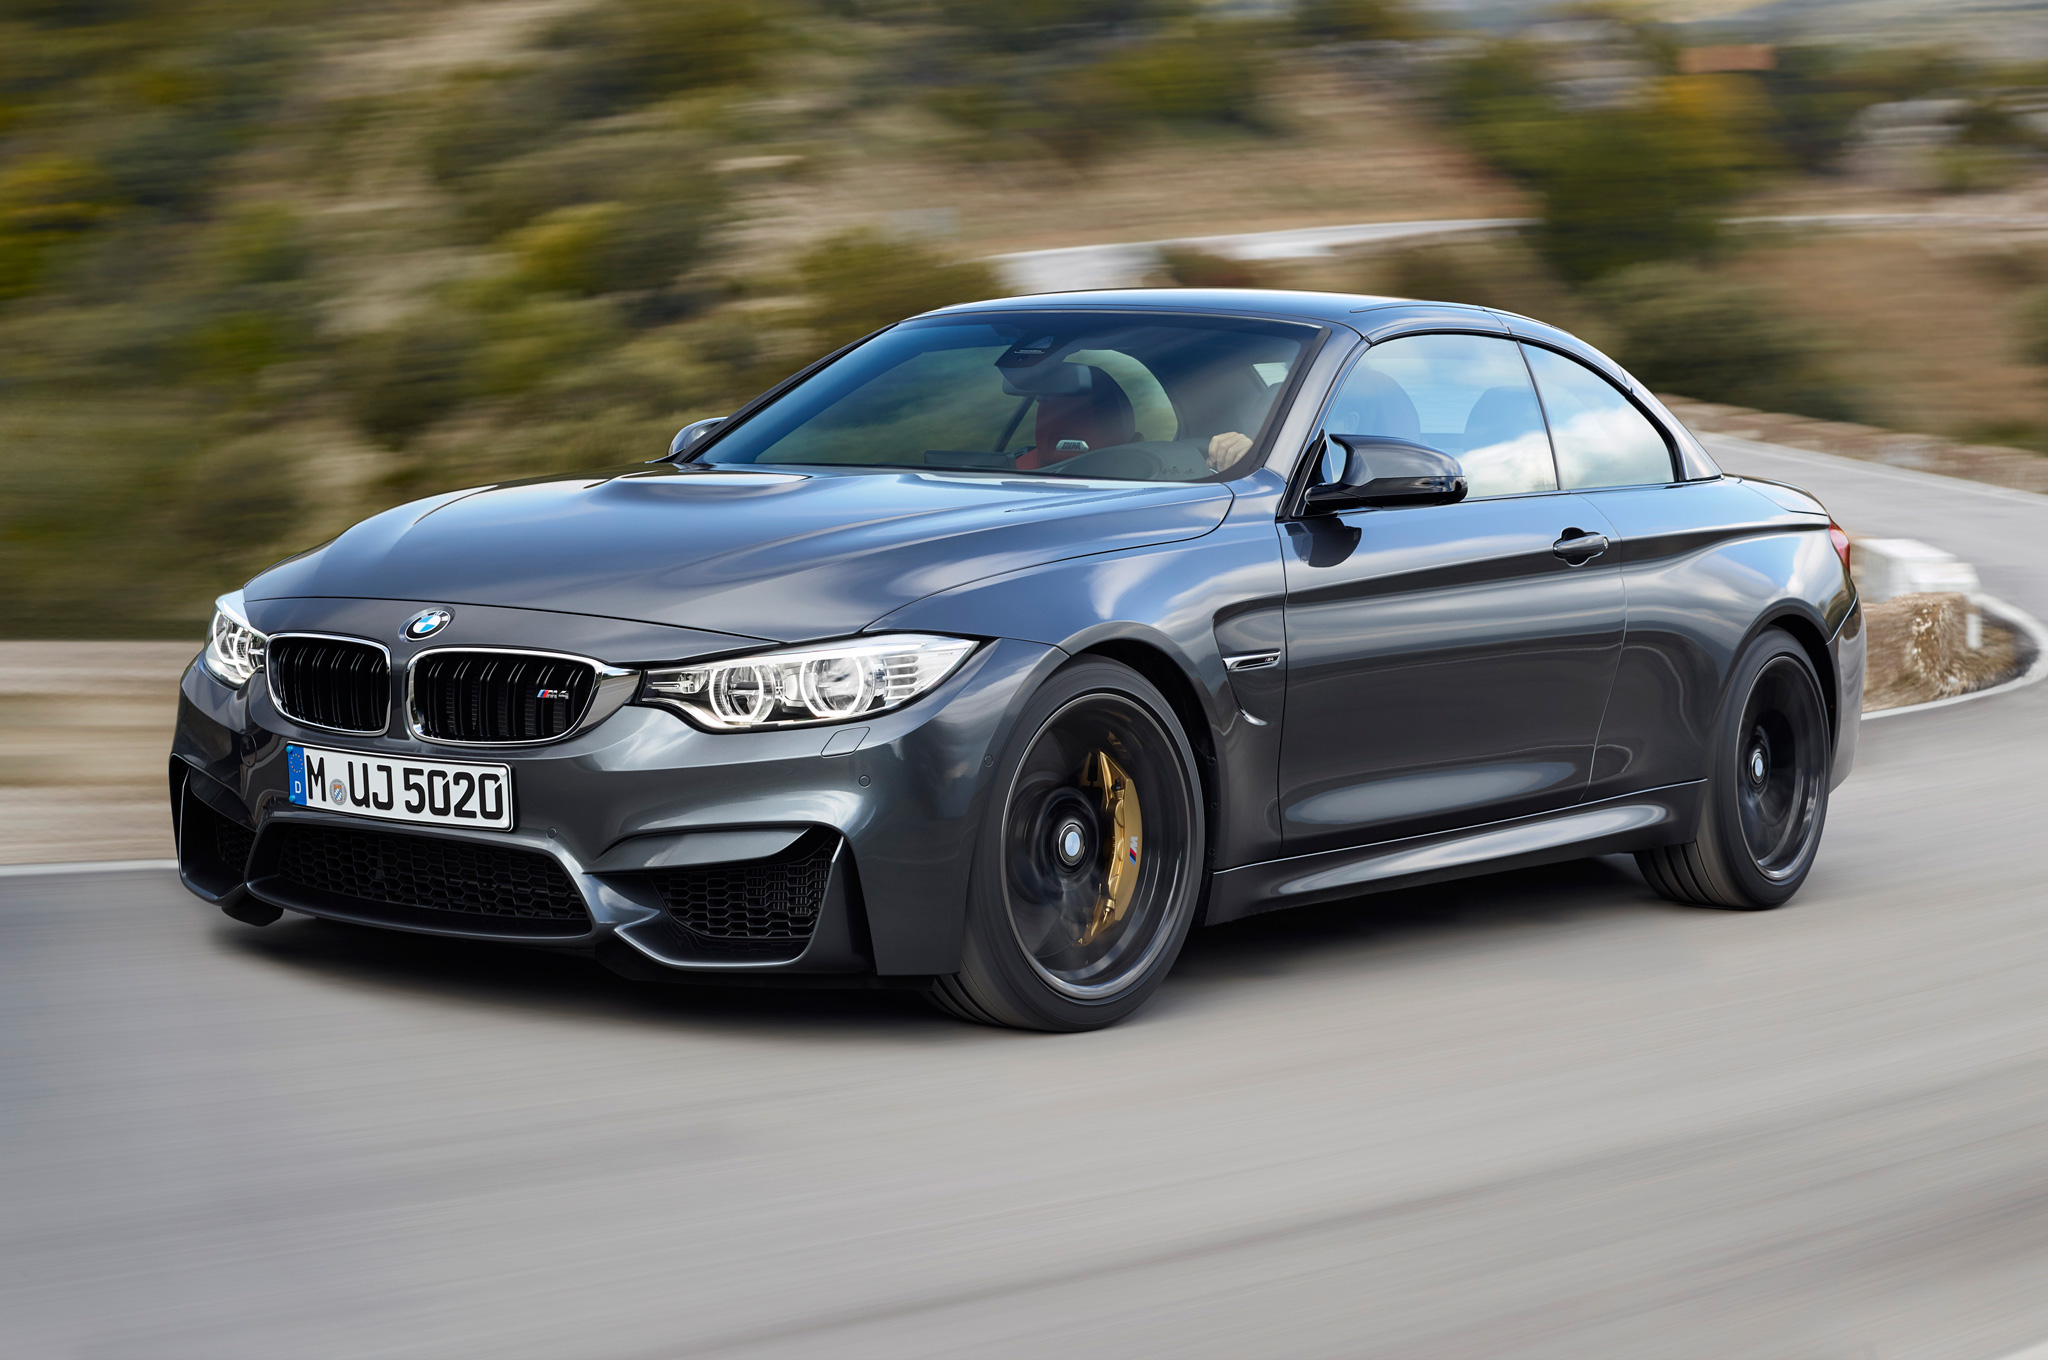 2015 Bmw M4 Convertible Road Performance (Photo 44 of 50)